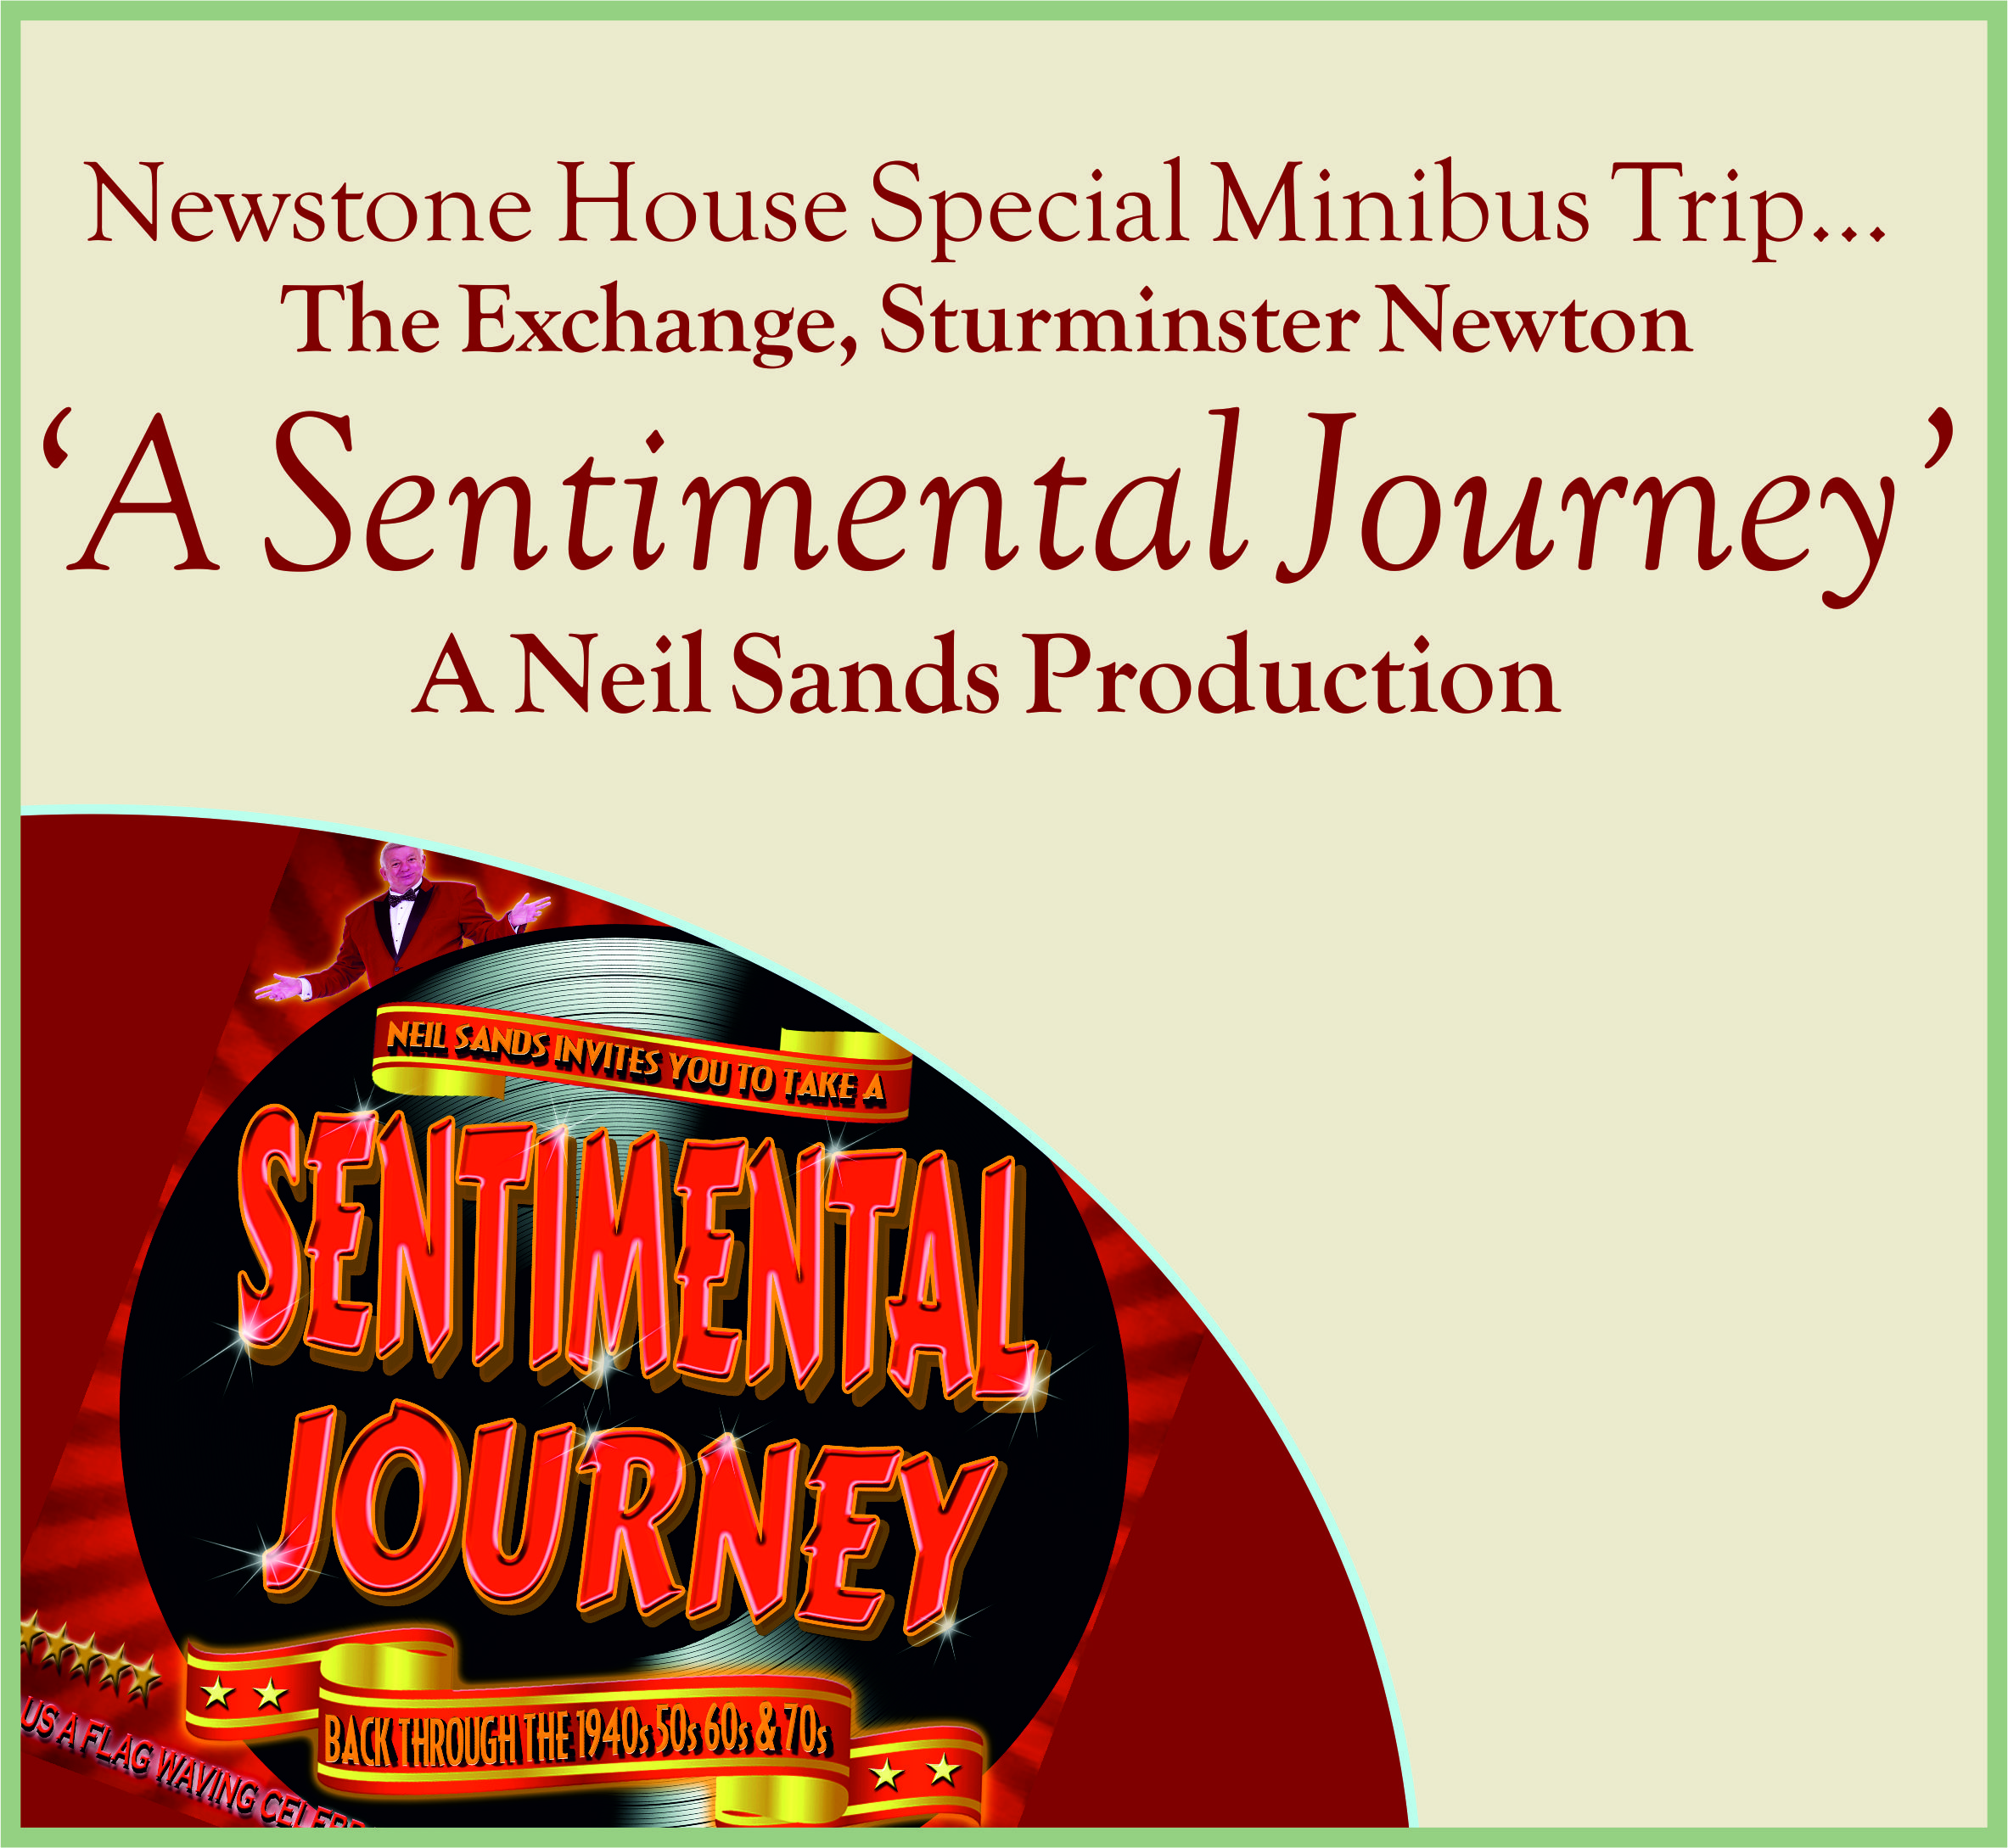 Events Template trip NS